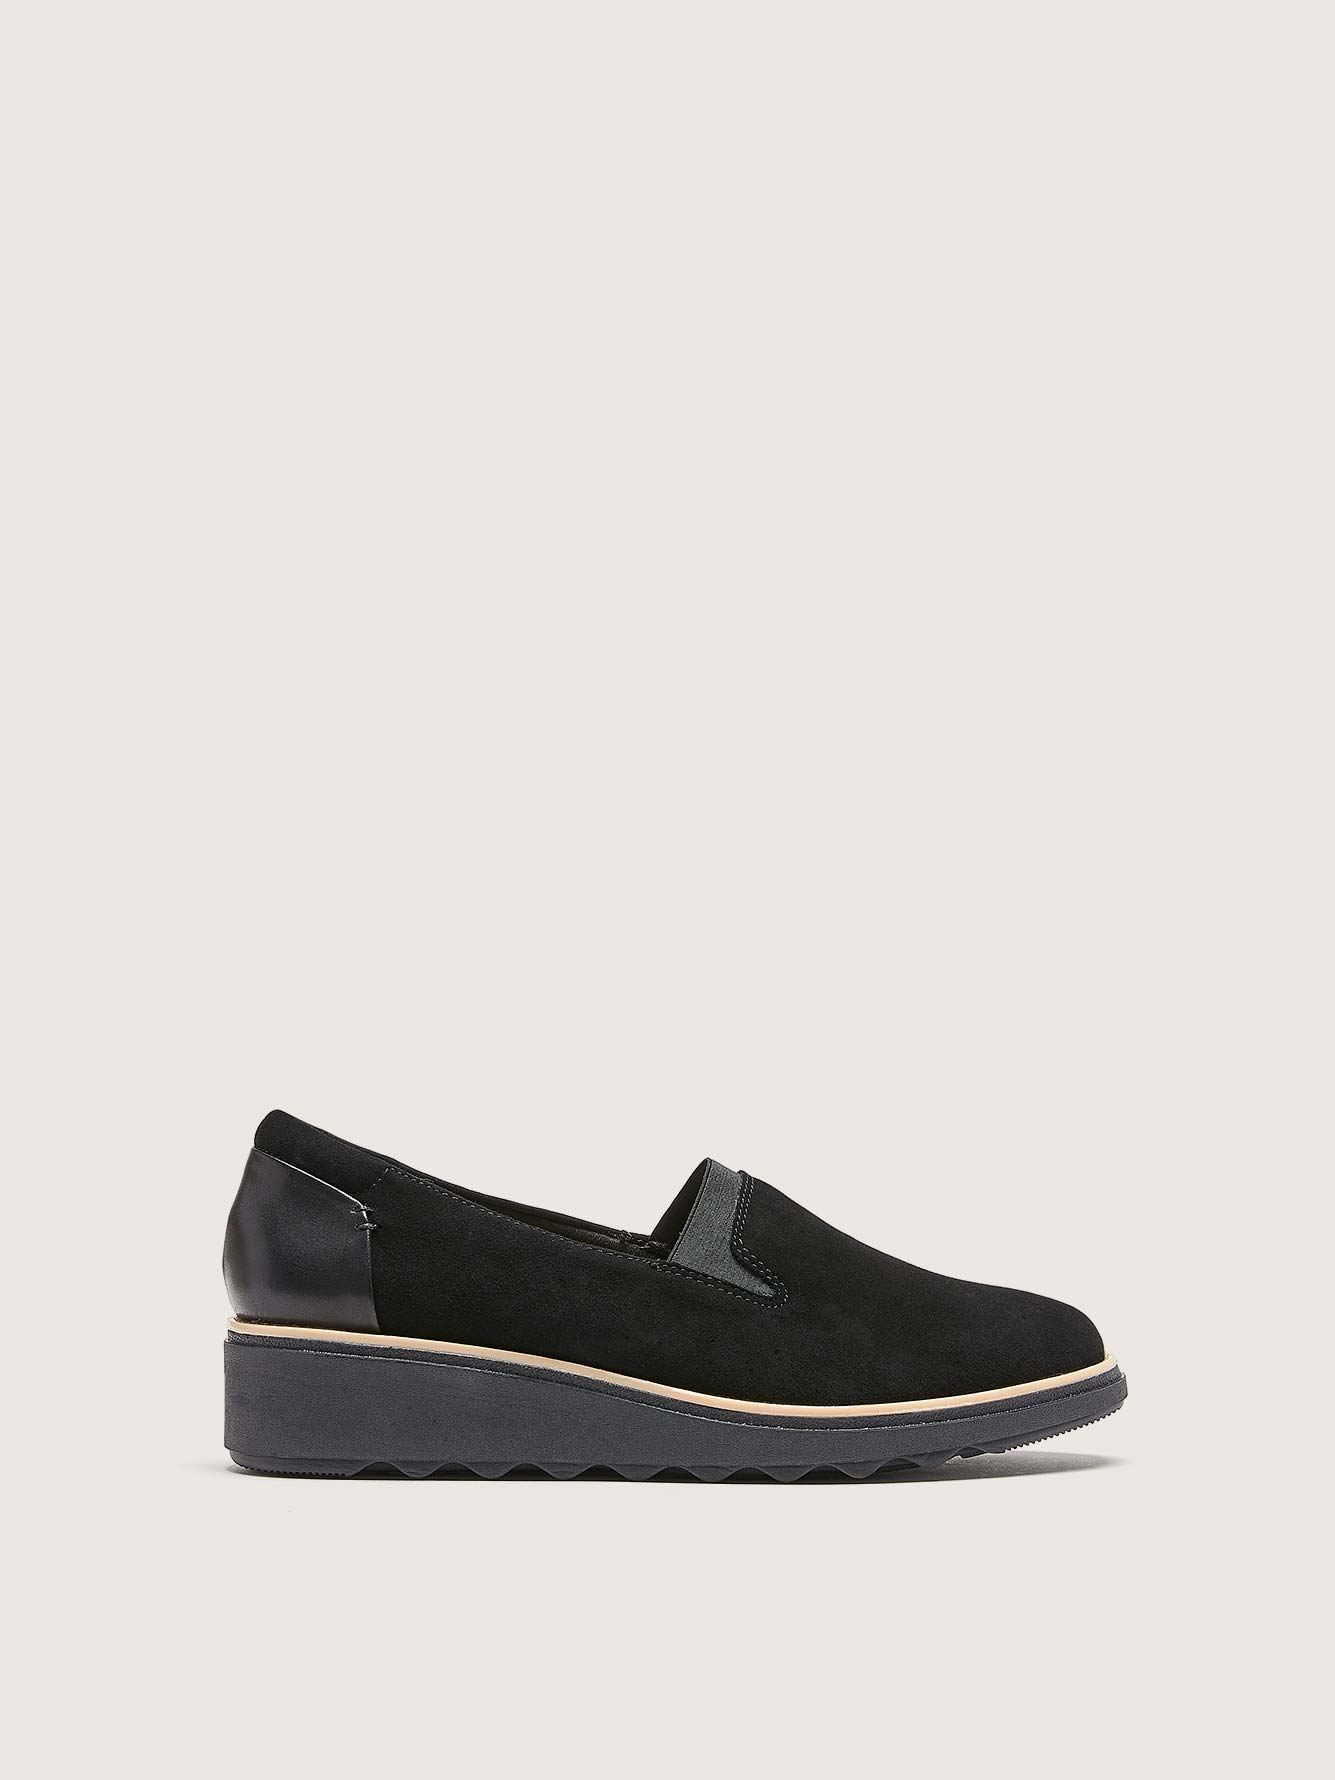 Wide Sharon Dolly Slip On Wedge Shoes - Clarks